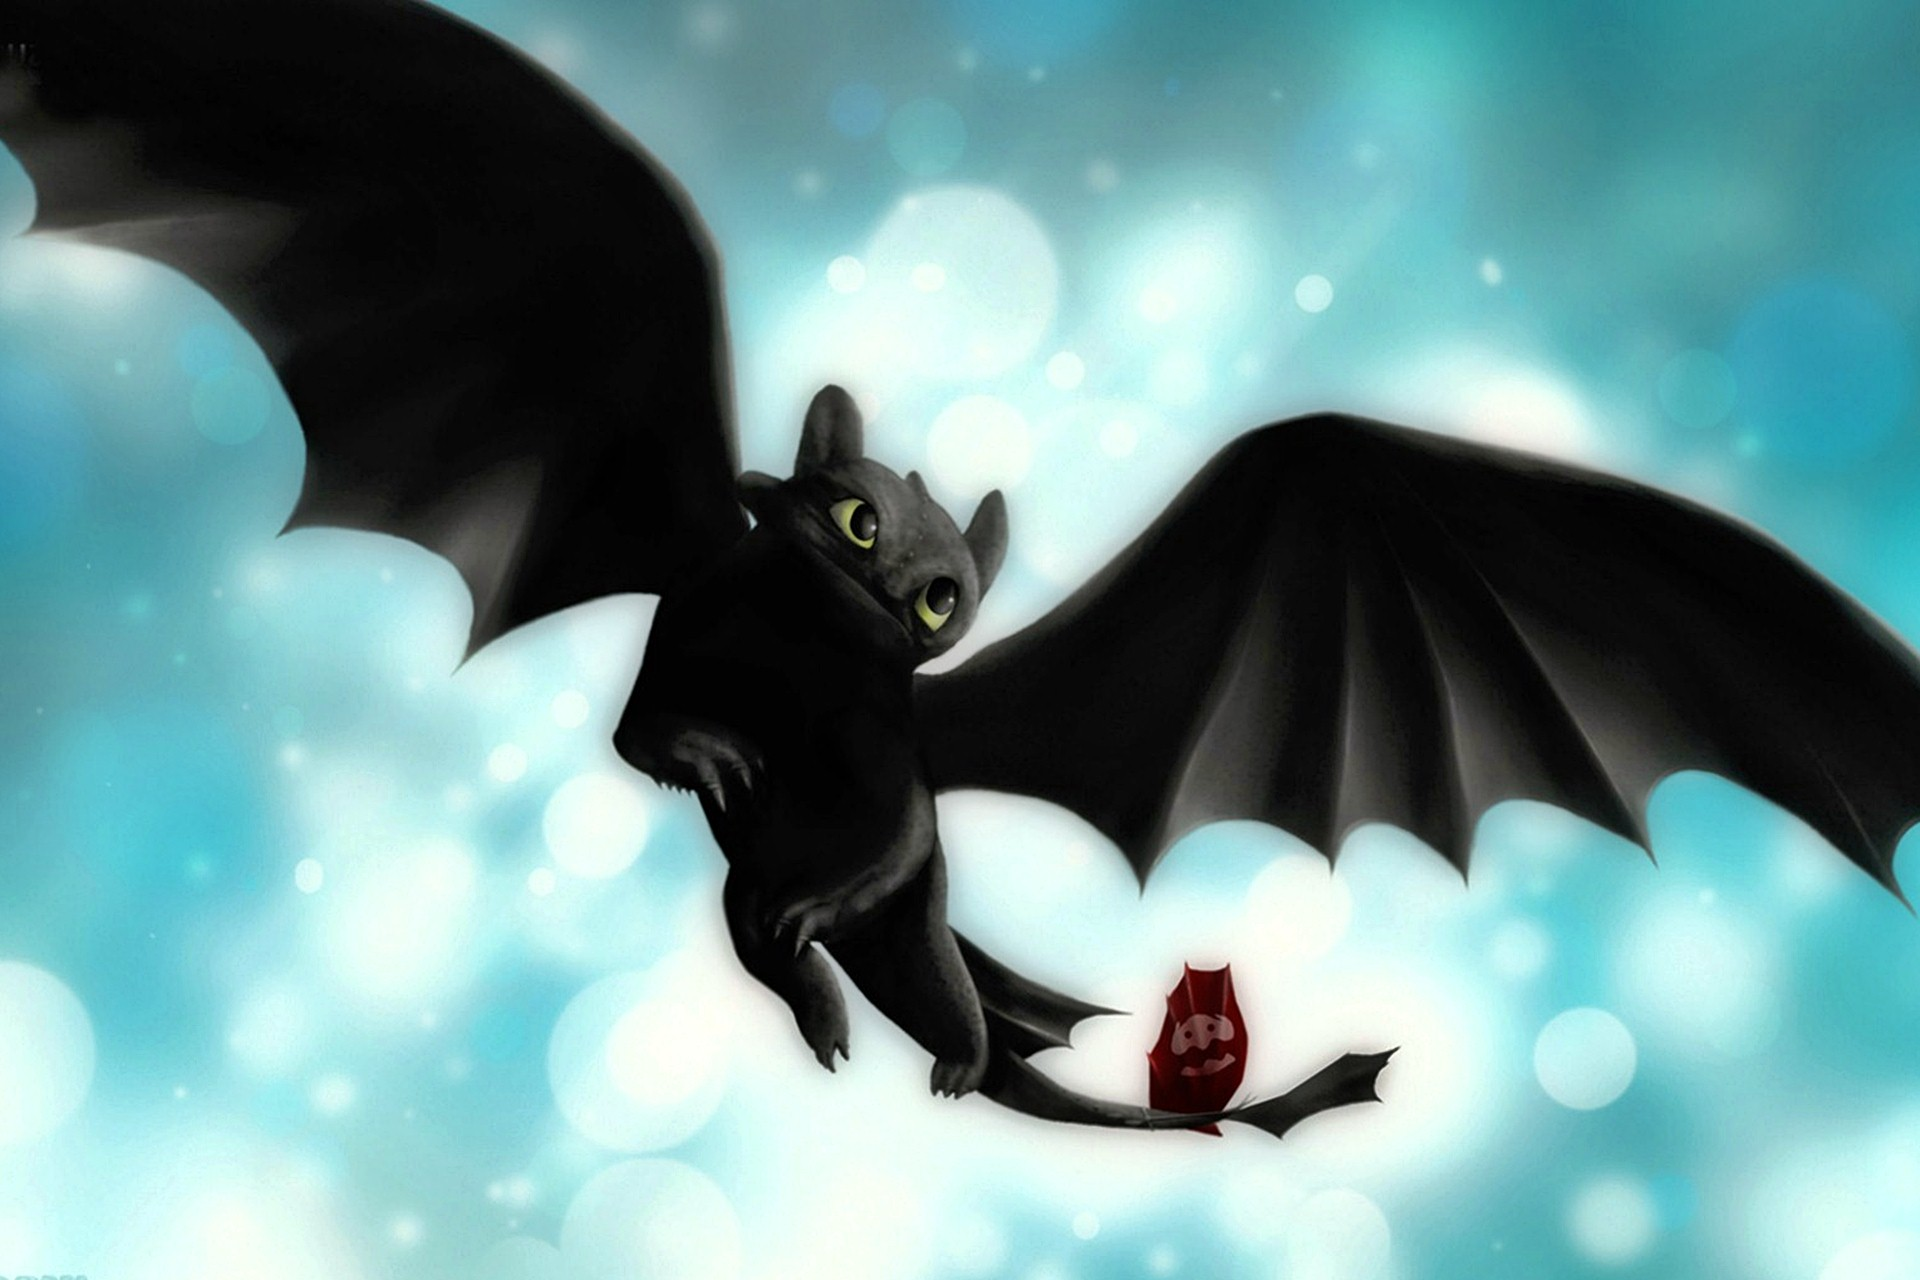 How To Train Your Dragon Wallpaper Toothless 36 Background Wallpaper 1920x1280